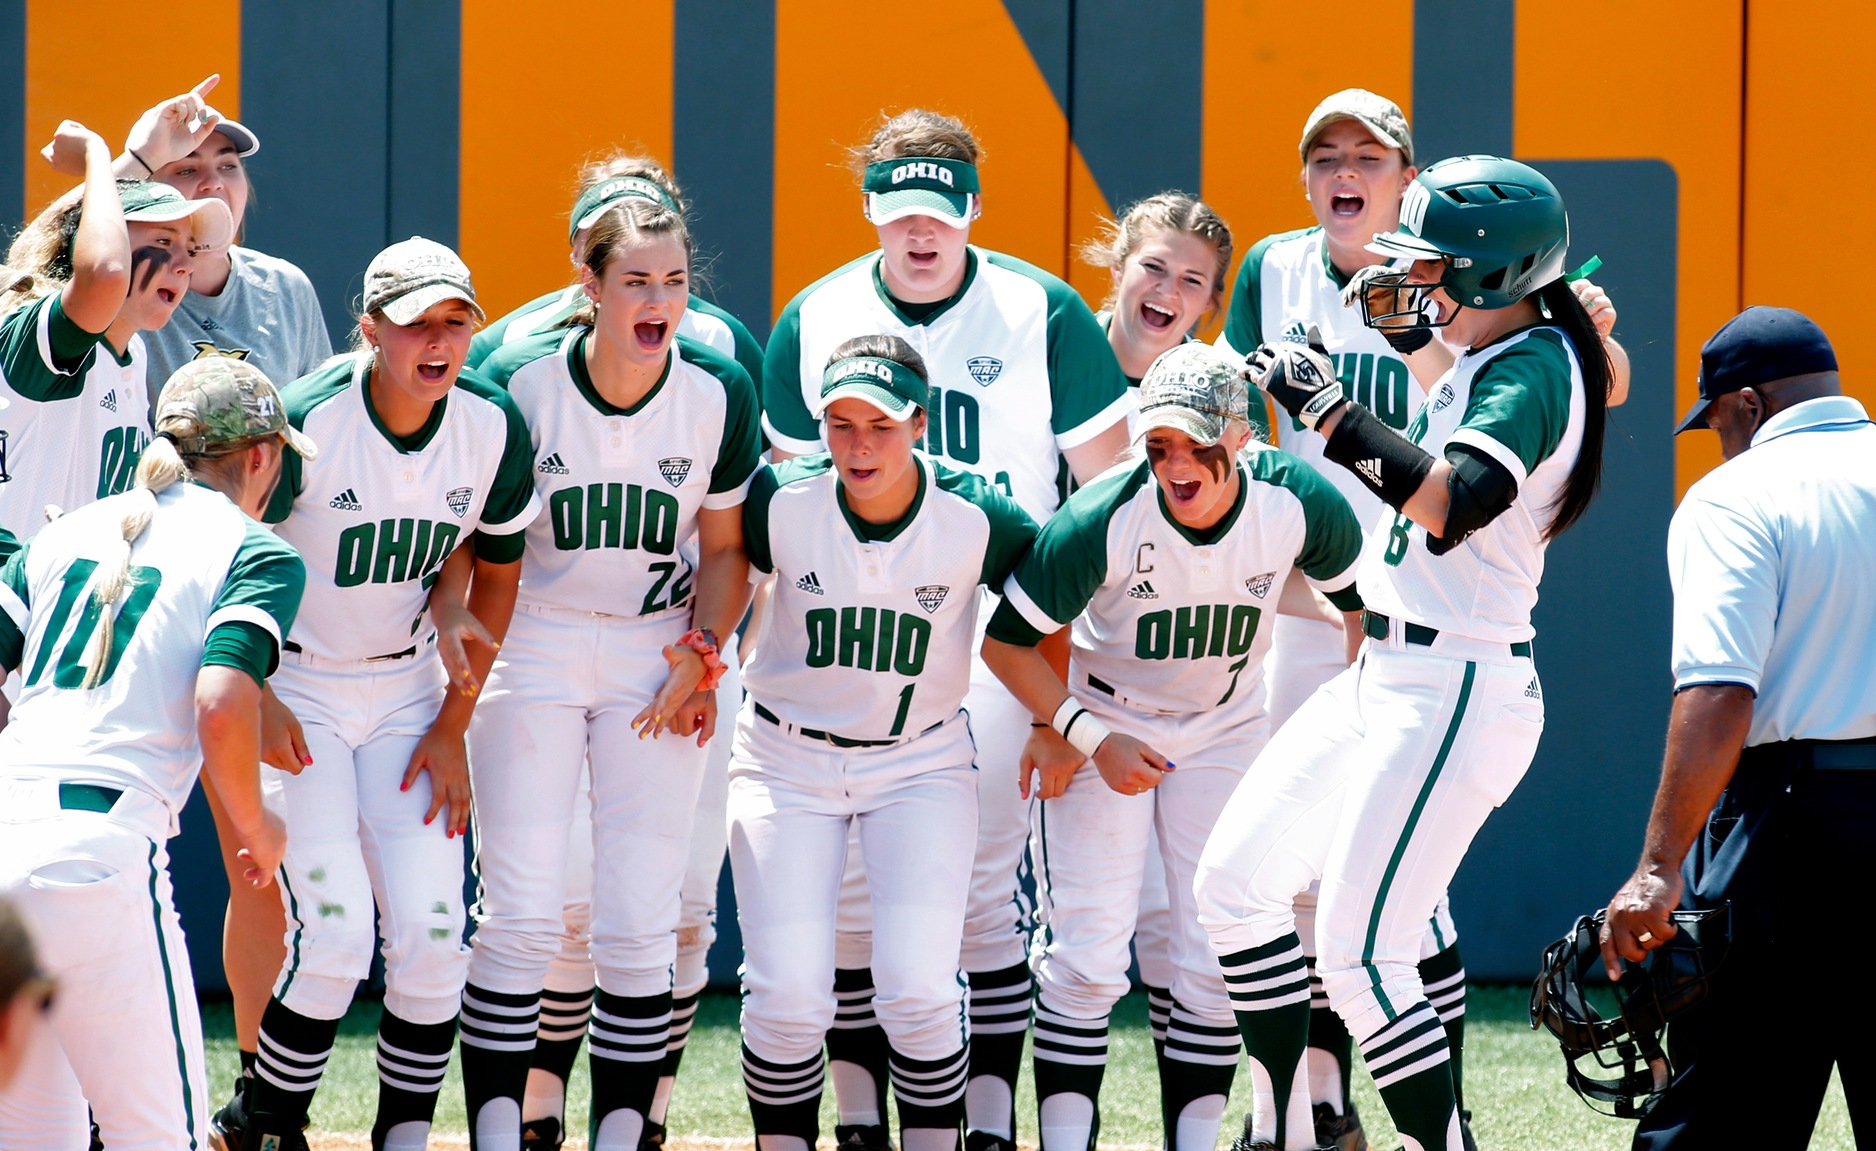 Freshmen Lead Ohio Softball to First Ever NCAA Regional Victory